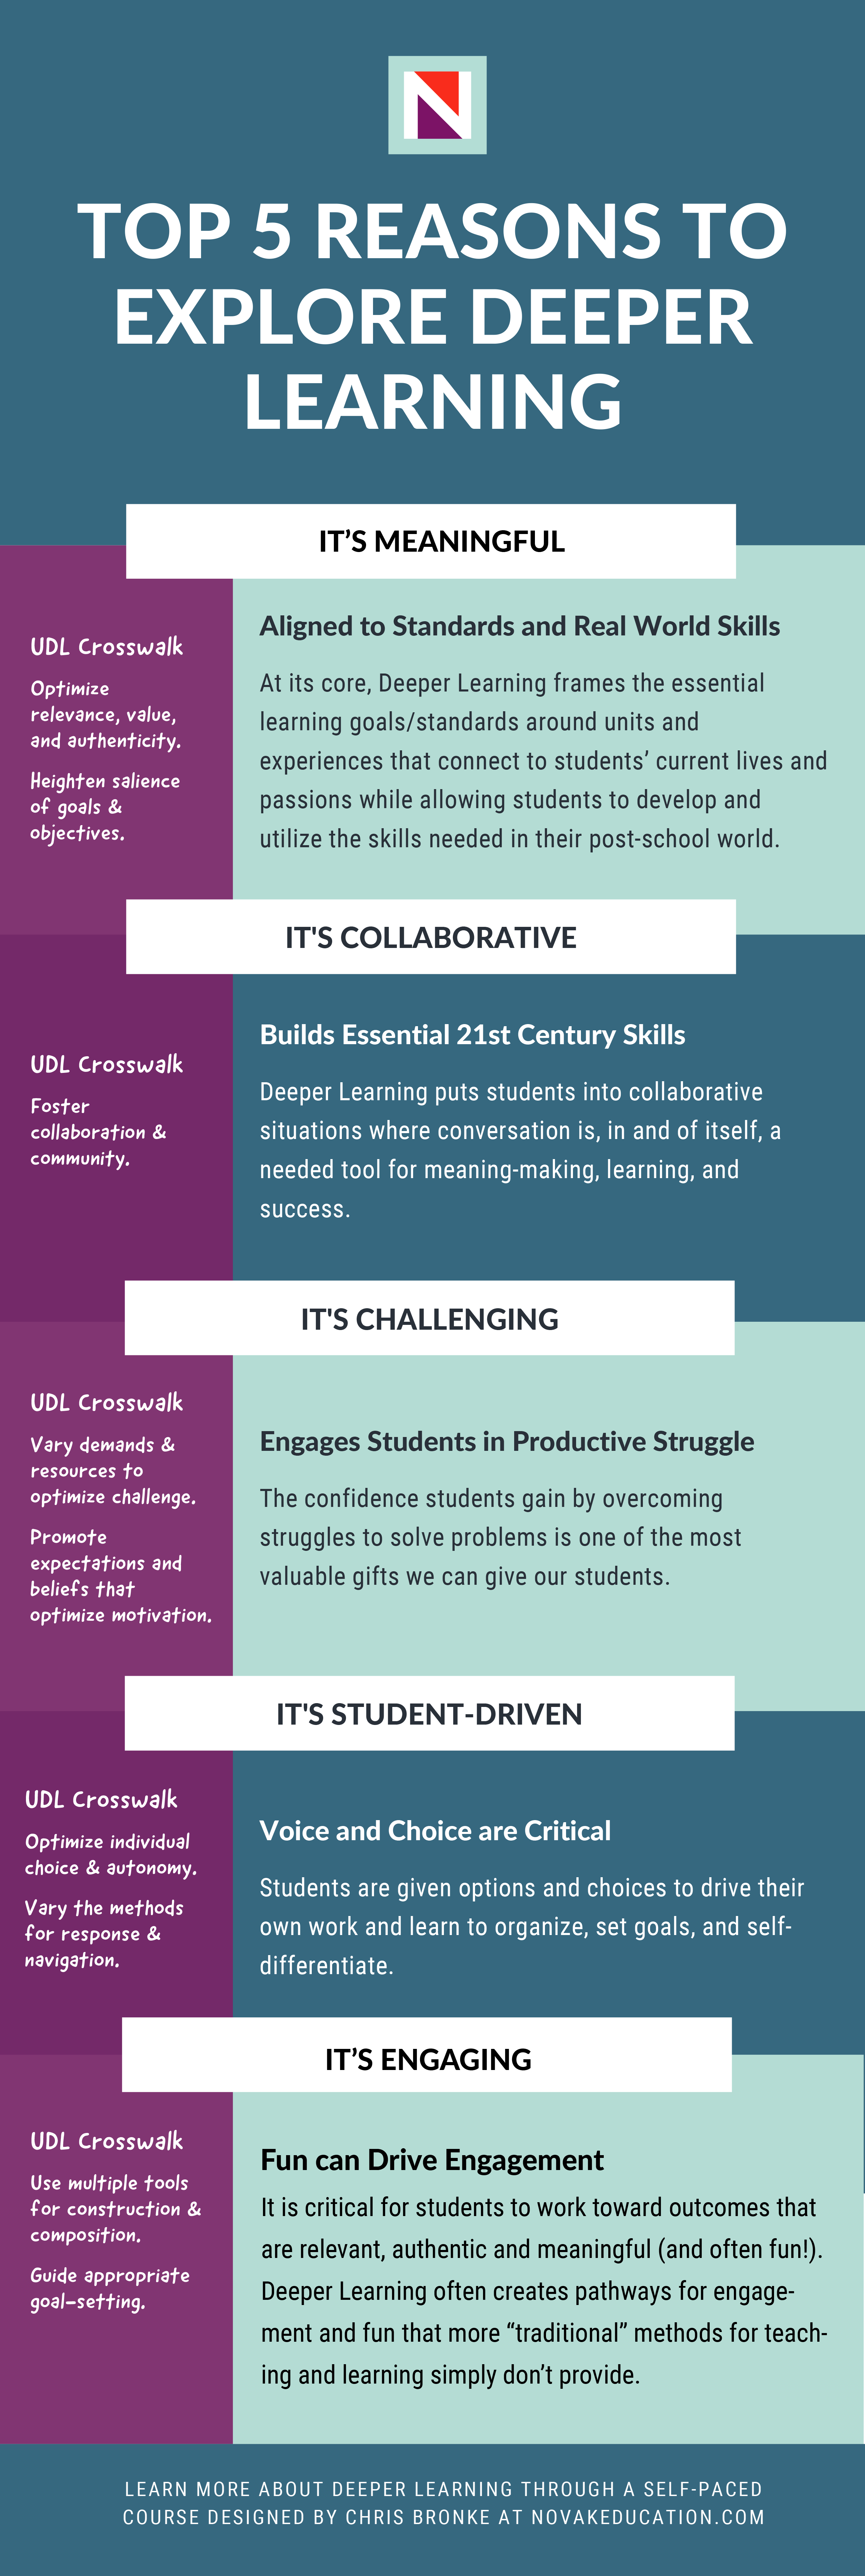 TOP 5 REASONS TO EXPLORE DEEPER LEARNING Infographic